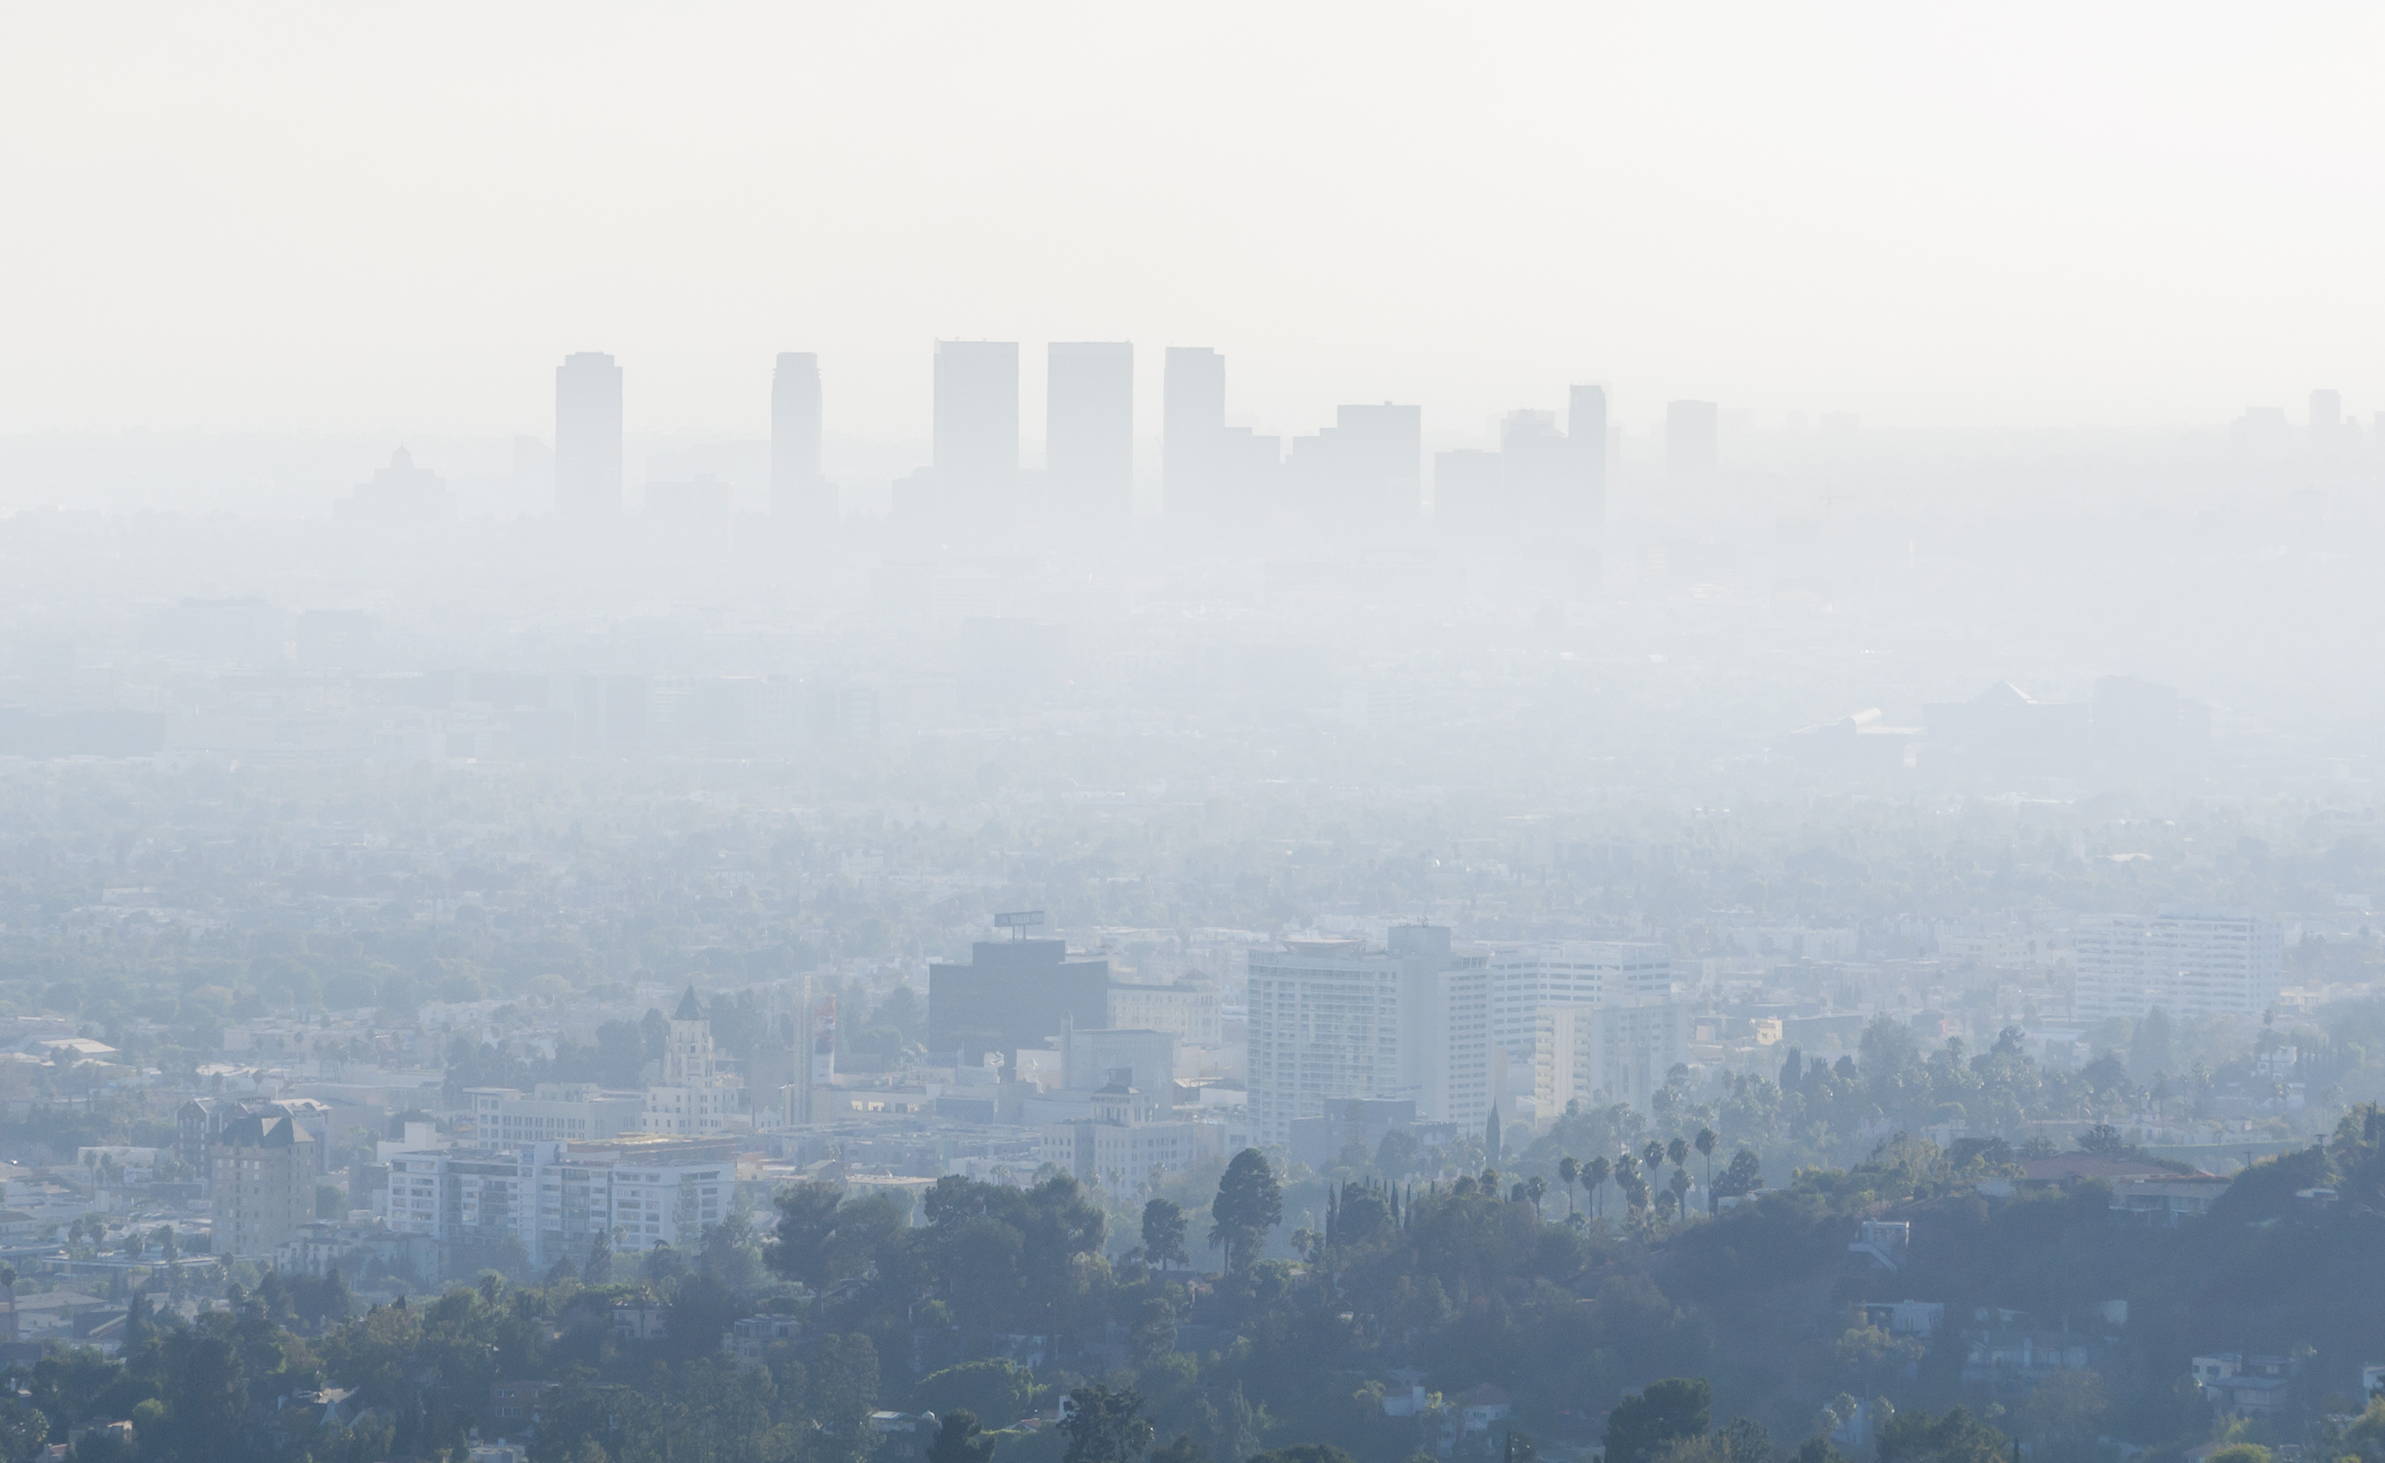 Exposure to low levels of air pollution can cause major structural changes to the heart that are similar to those linked to heart failure.